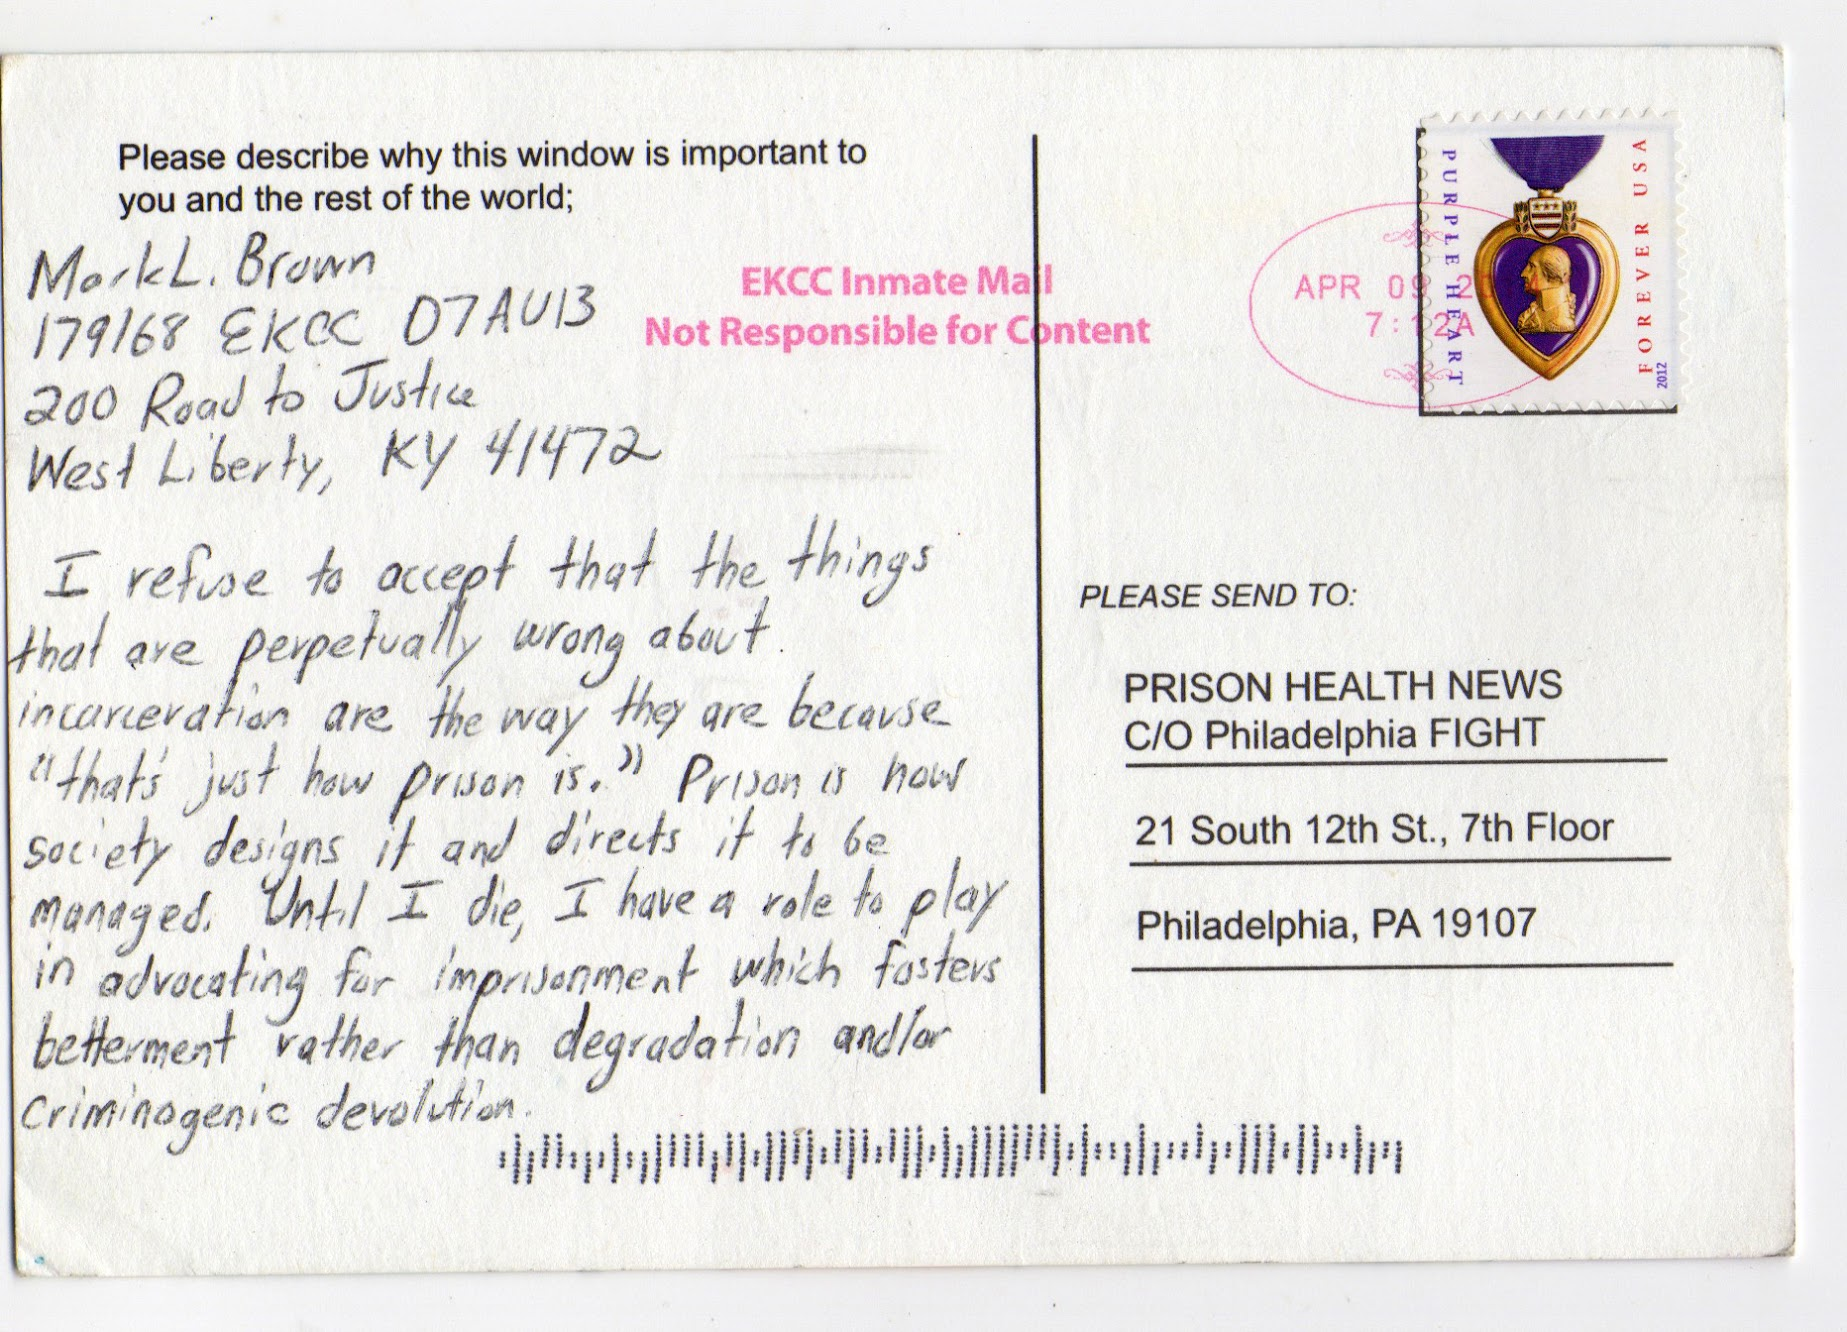 postcards_from_prison 6.jpeg